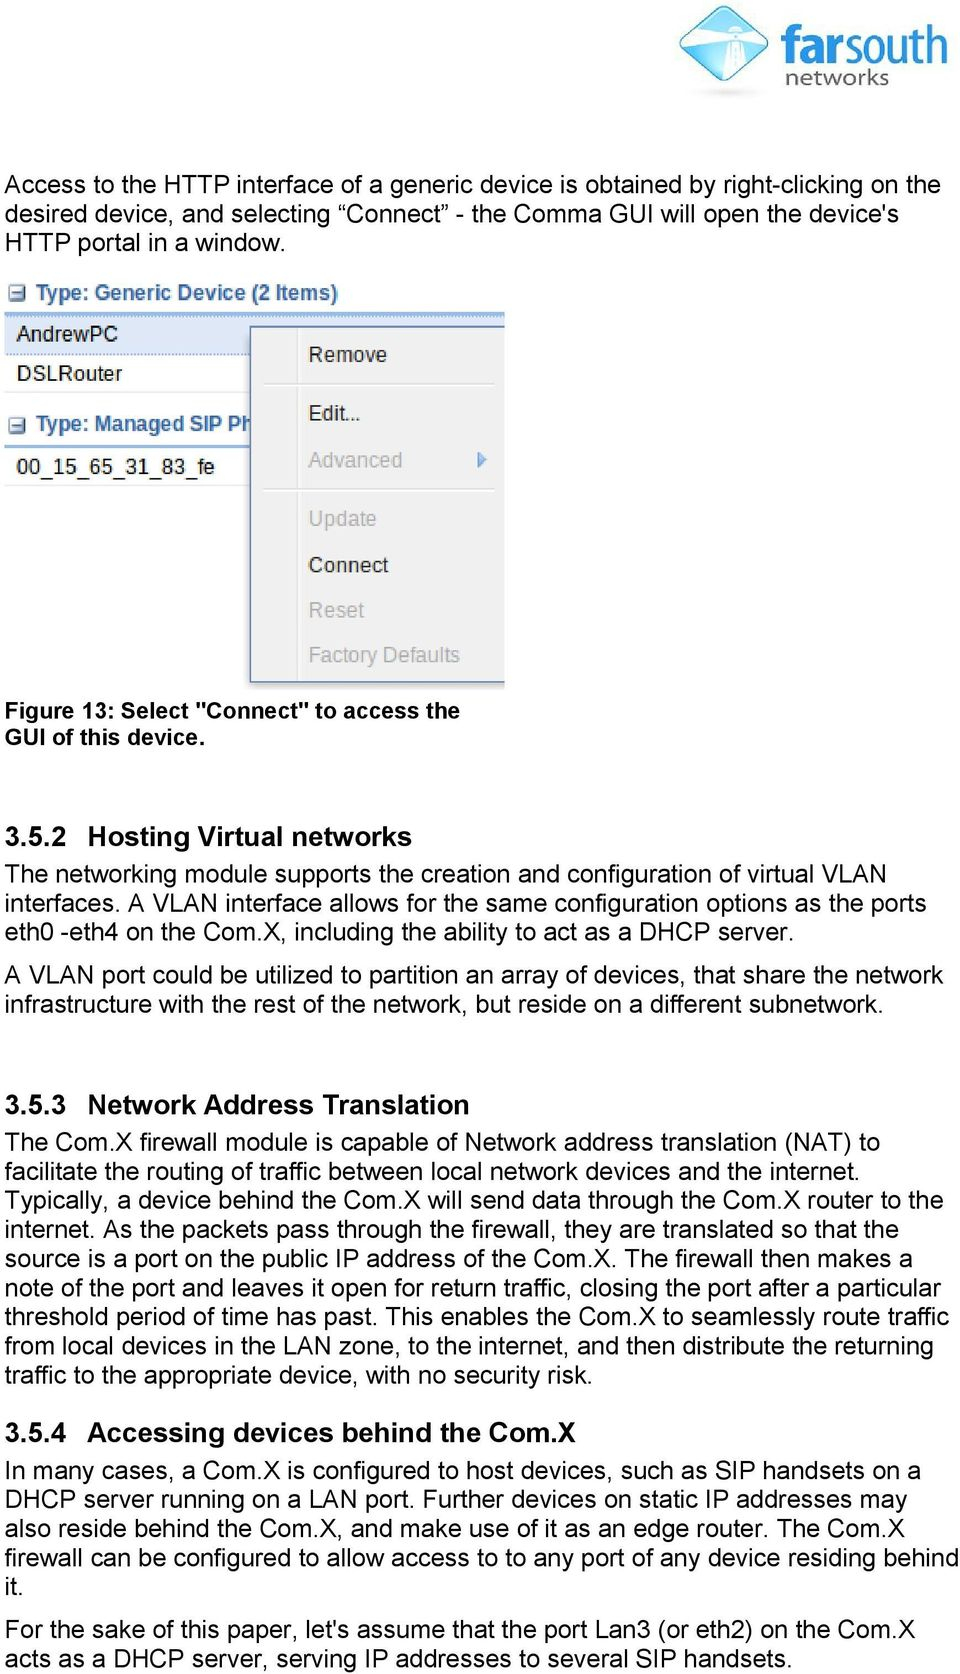 A VLAN interface allows for the same configuration options as the ports eth0 -eth4 on the Com.X, including the ability to act as a DHCP server.